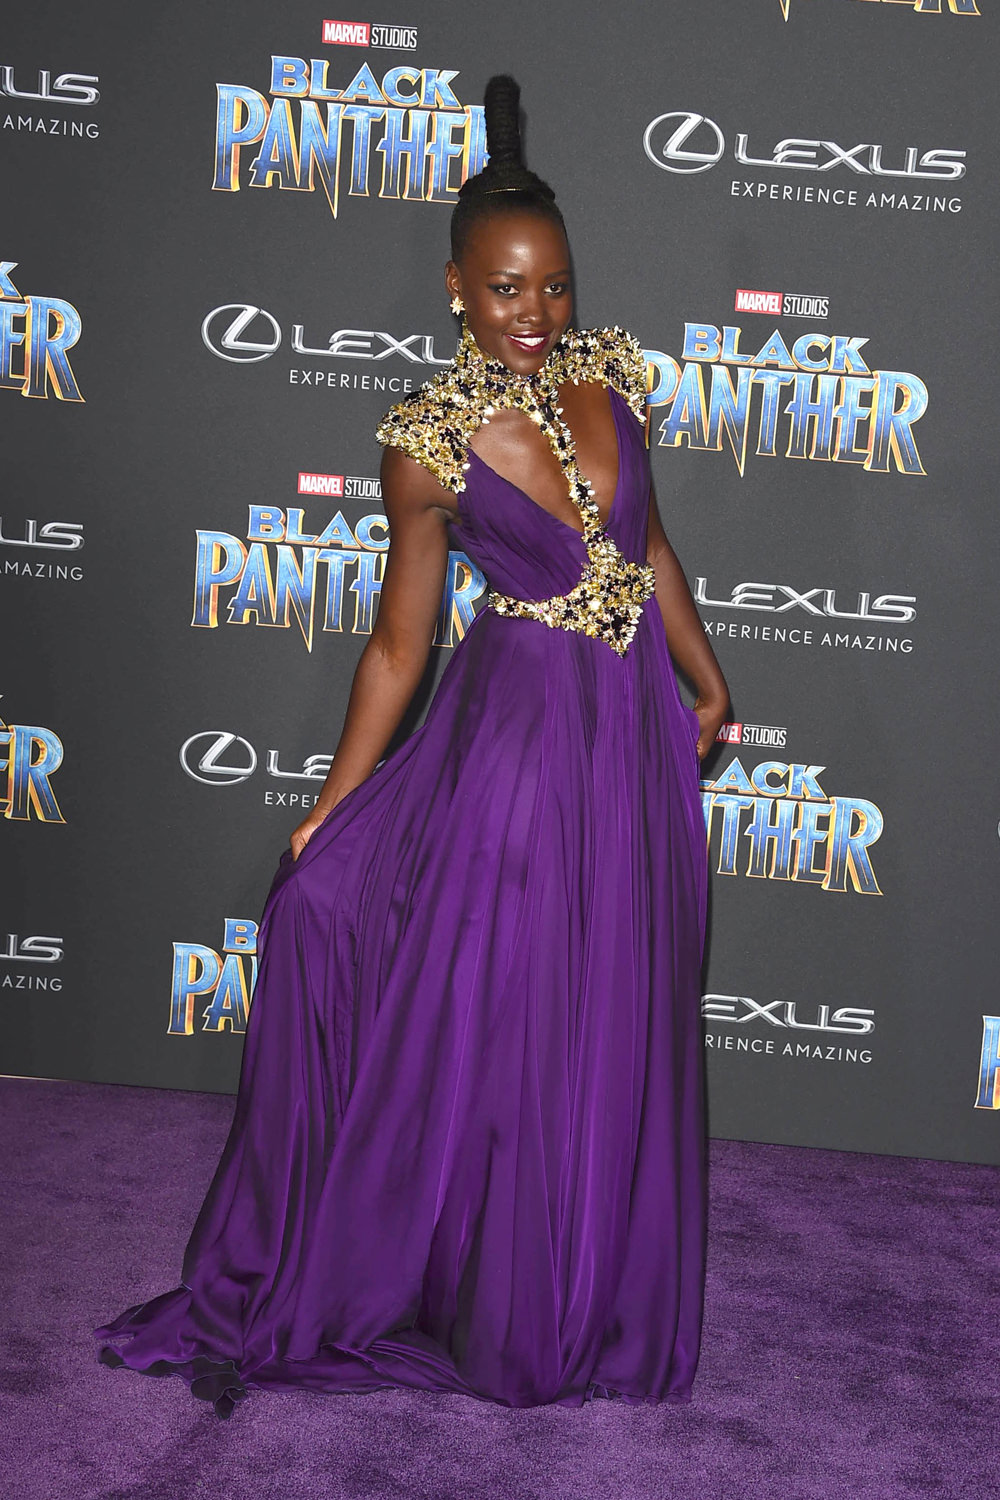 lupita-nyongo-black-panther-los-angeles-movie-premiere-red-carpet-fashion-atelier-versace-tom-lorenzo-site-1